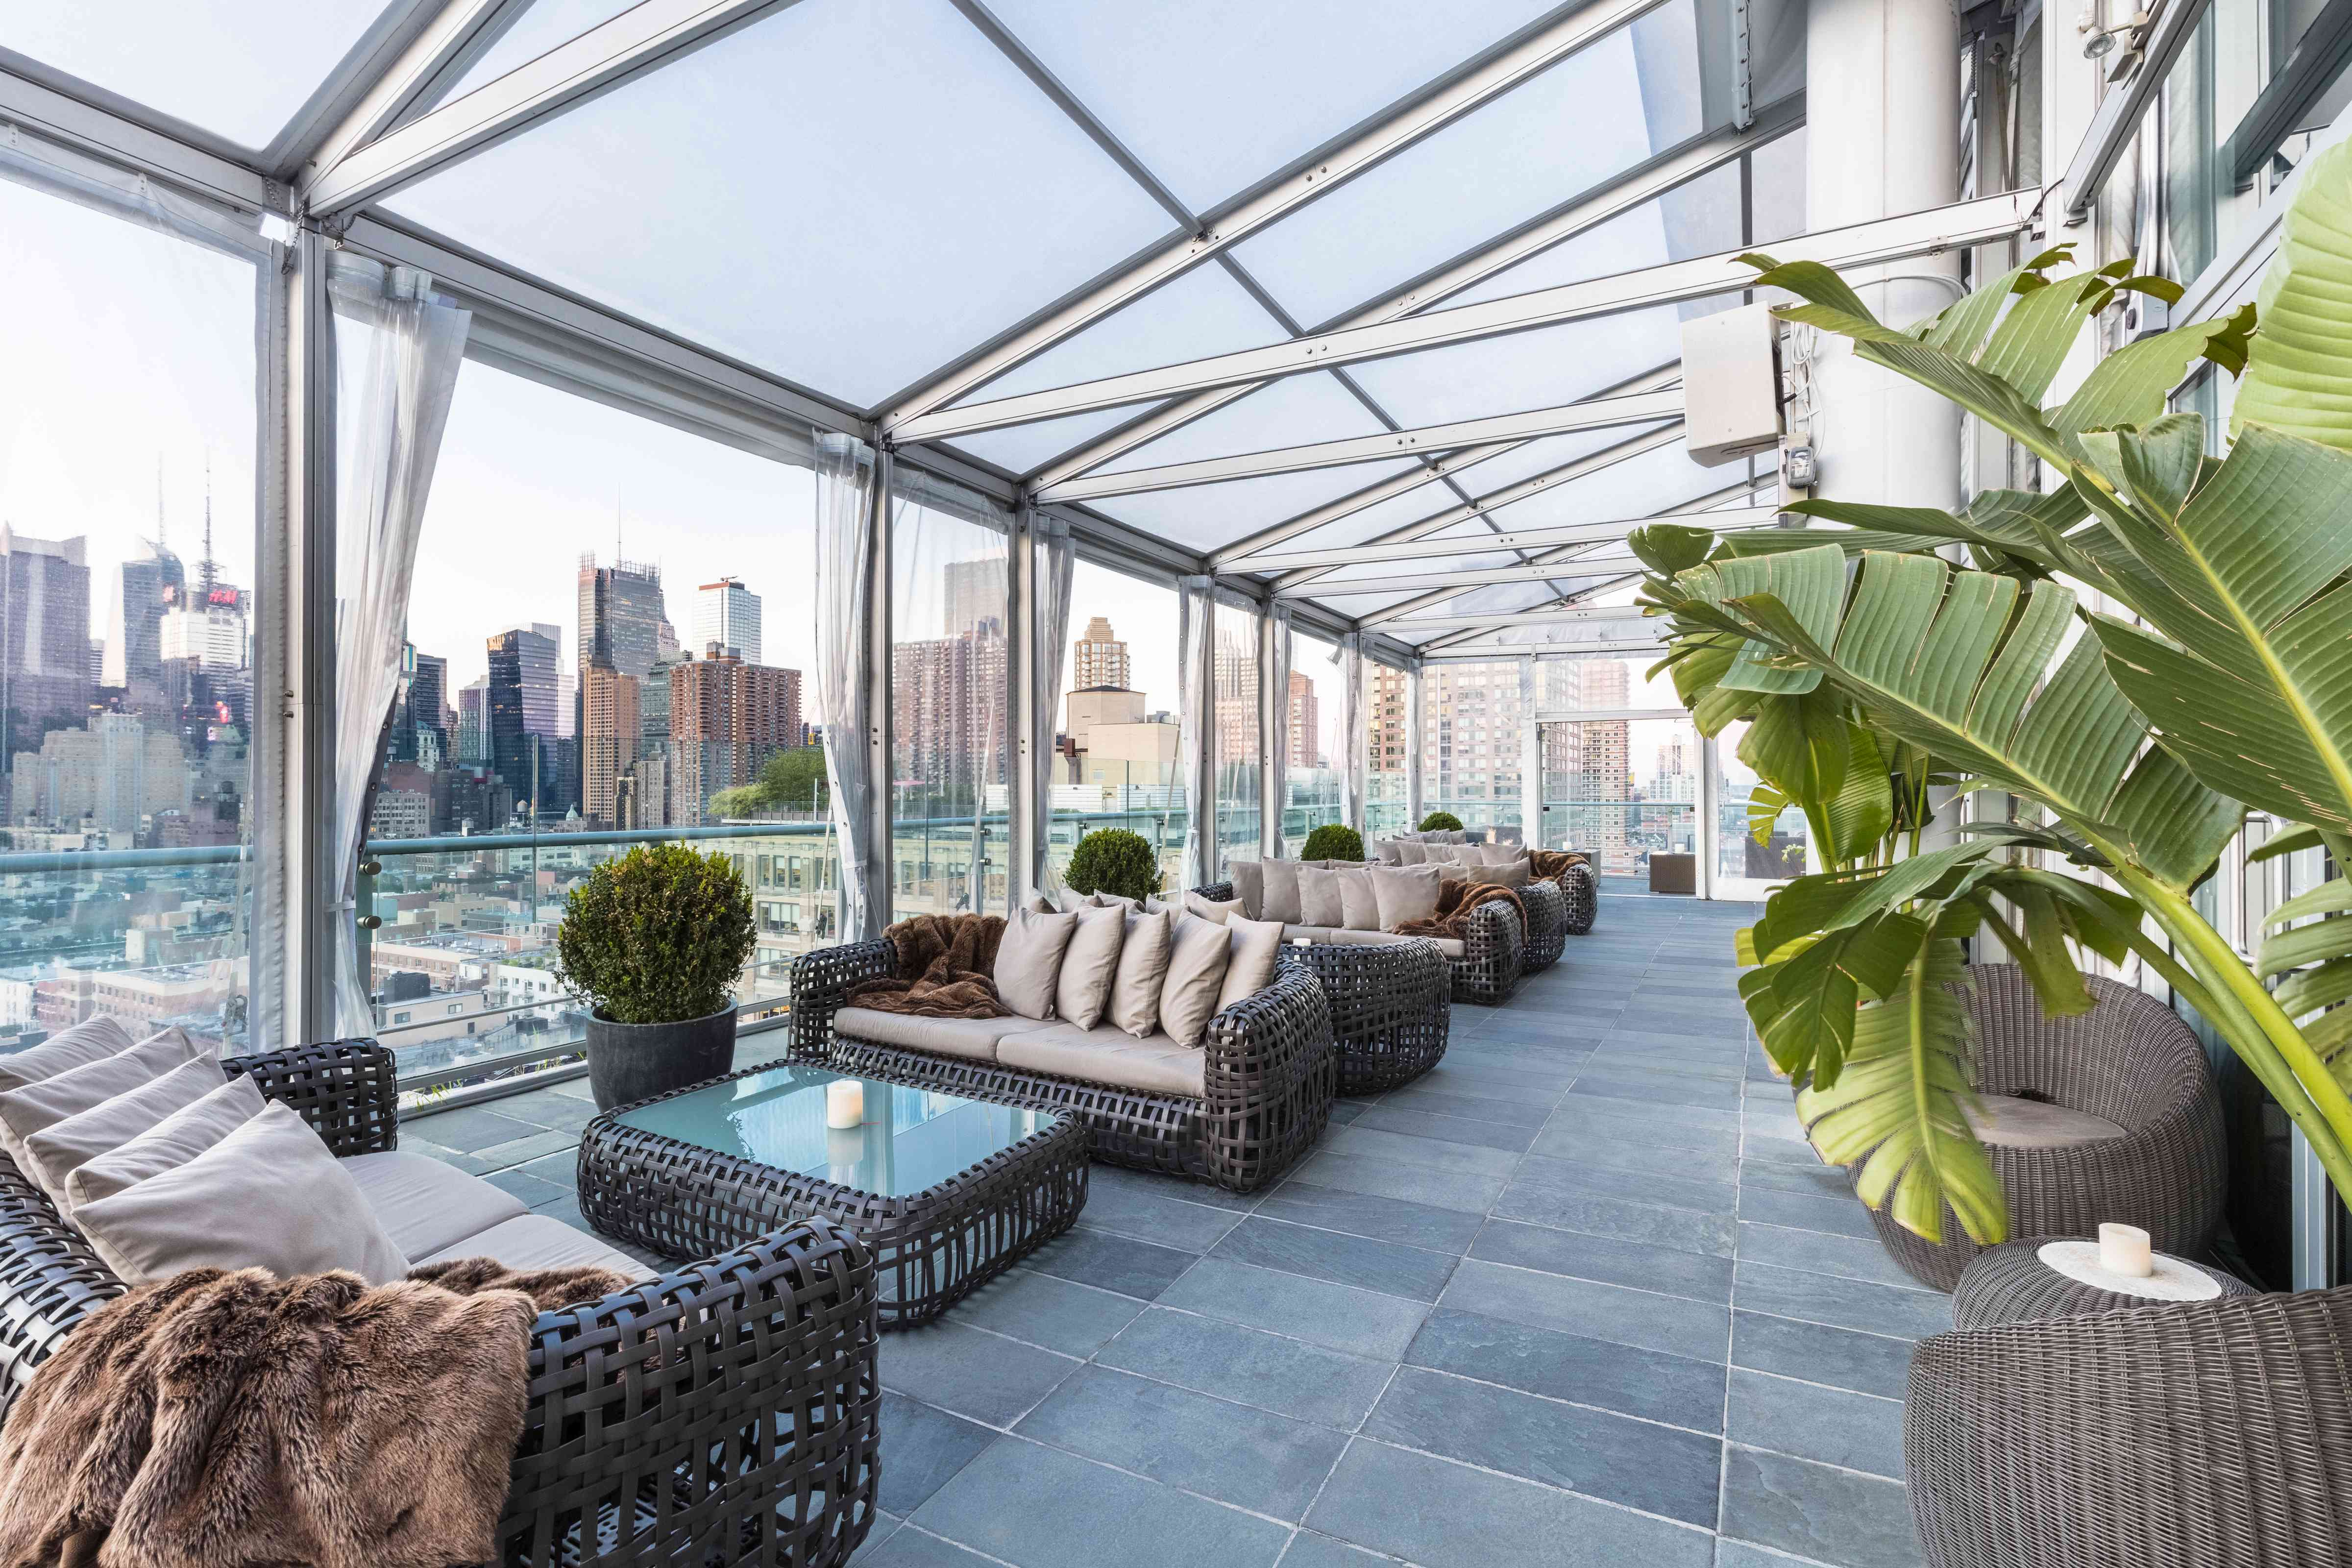 Glass enclosure with a series of faux-wicker couches a a few potted plants